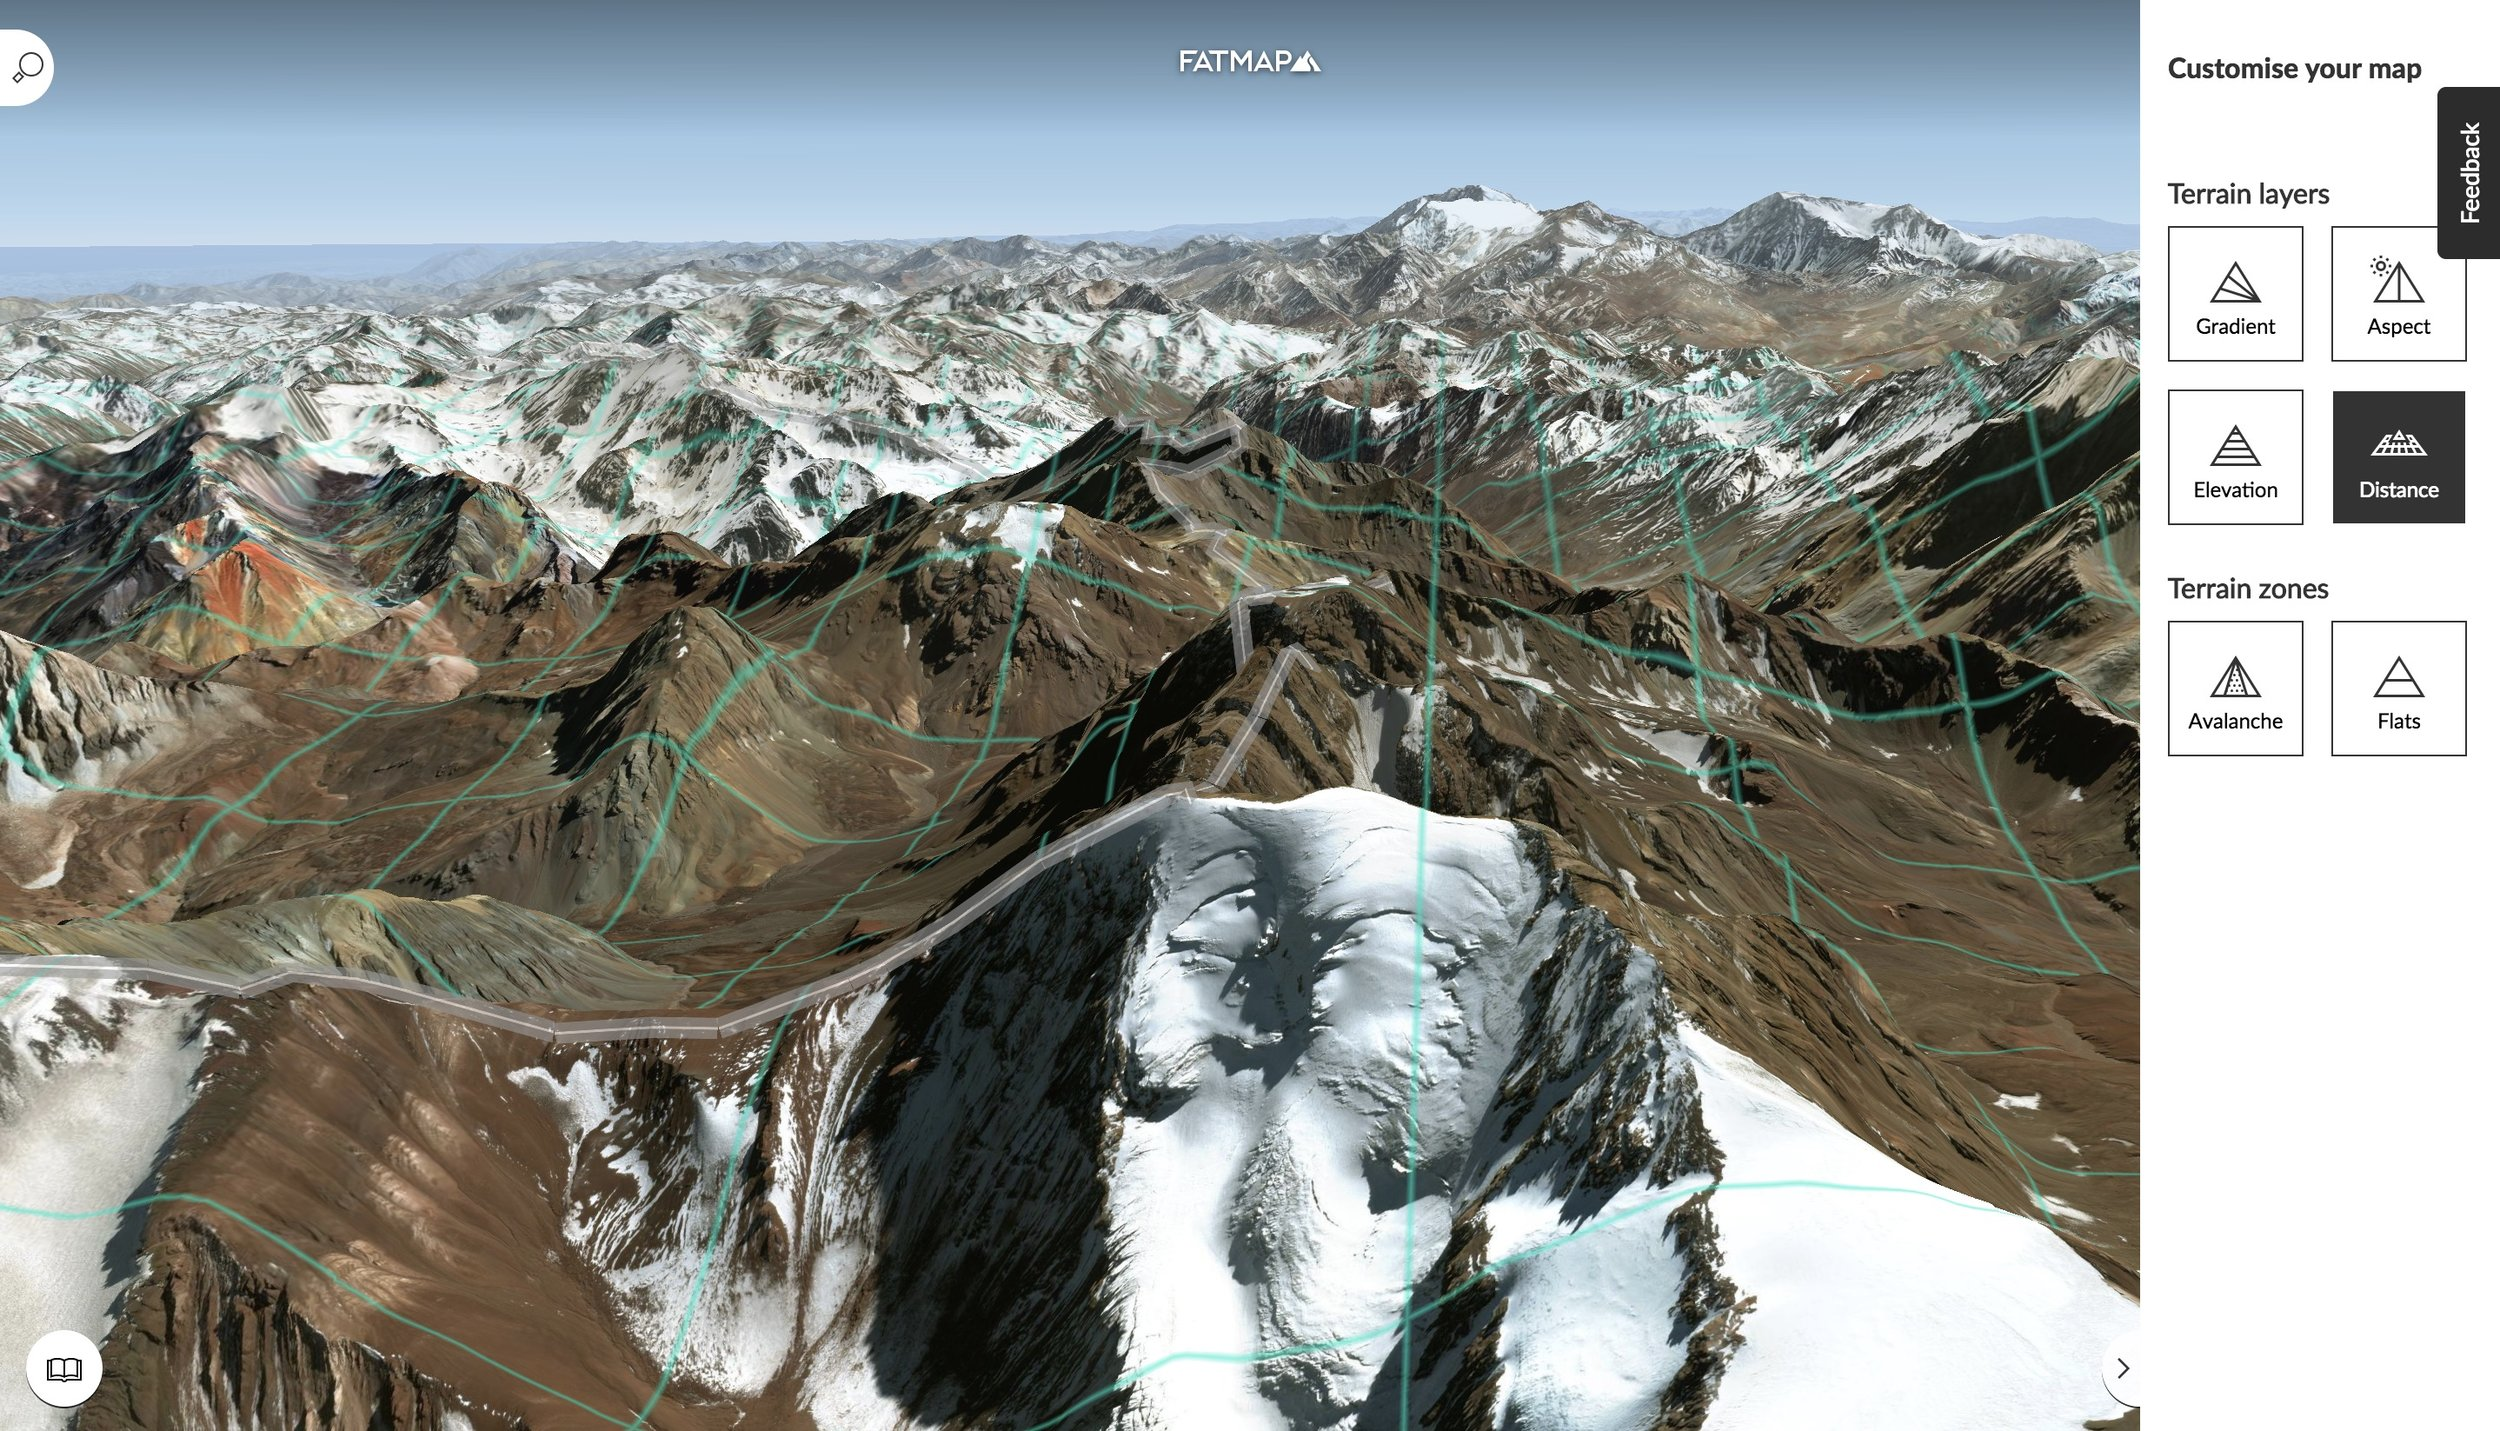 Understand your terrain better with the FATMAP Terrain Tools